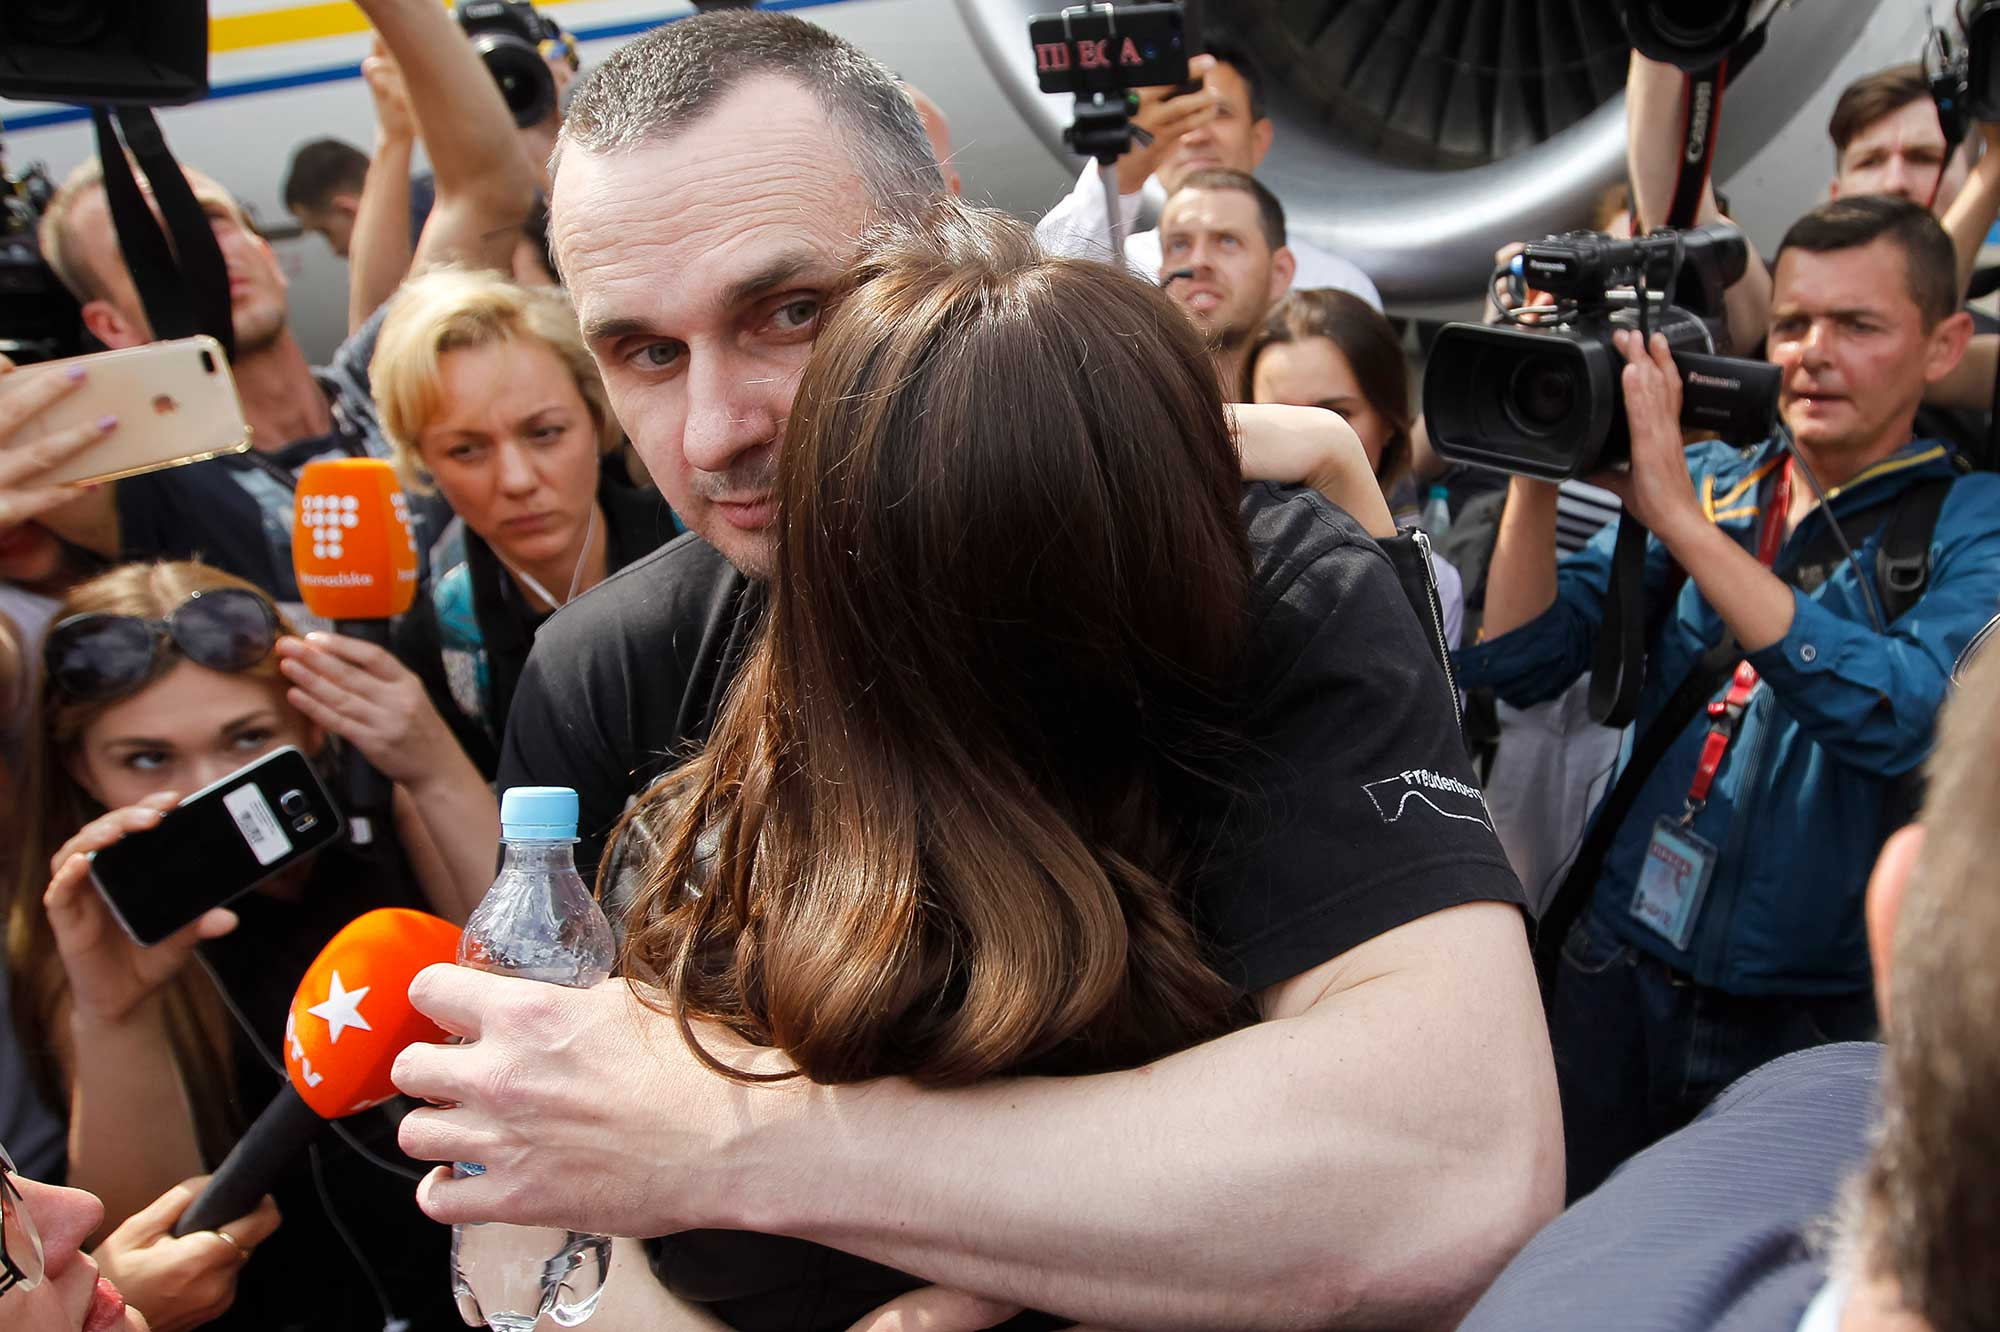 264937 oleg-sentsov-freilassung-russland | ©  NurPhoto via Getty Images